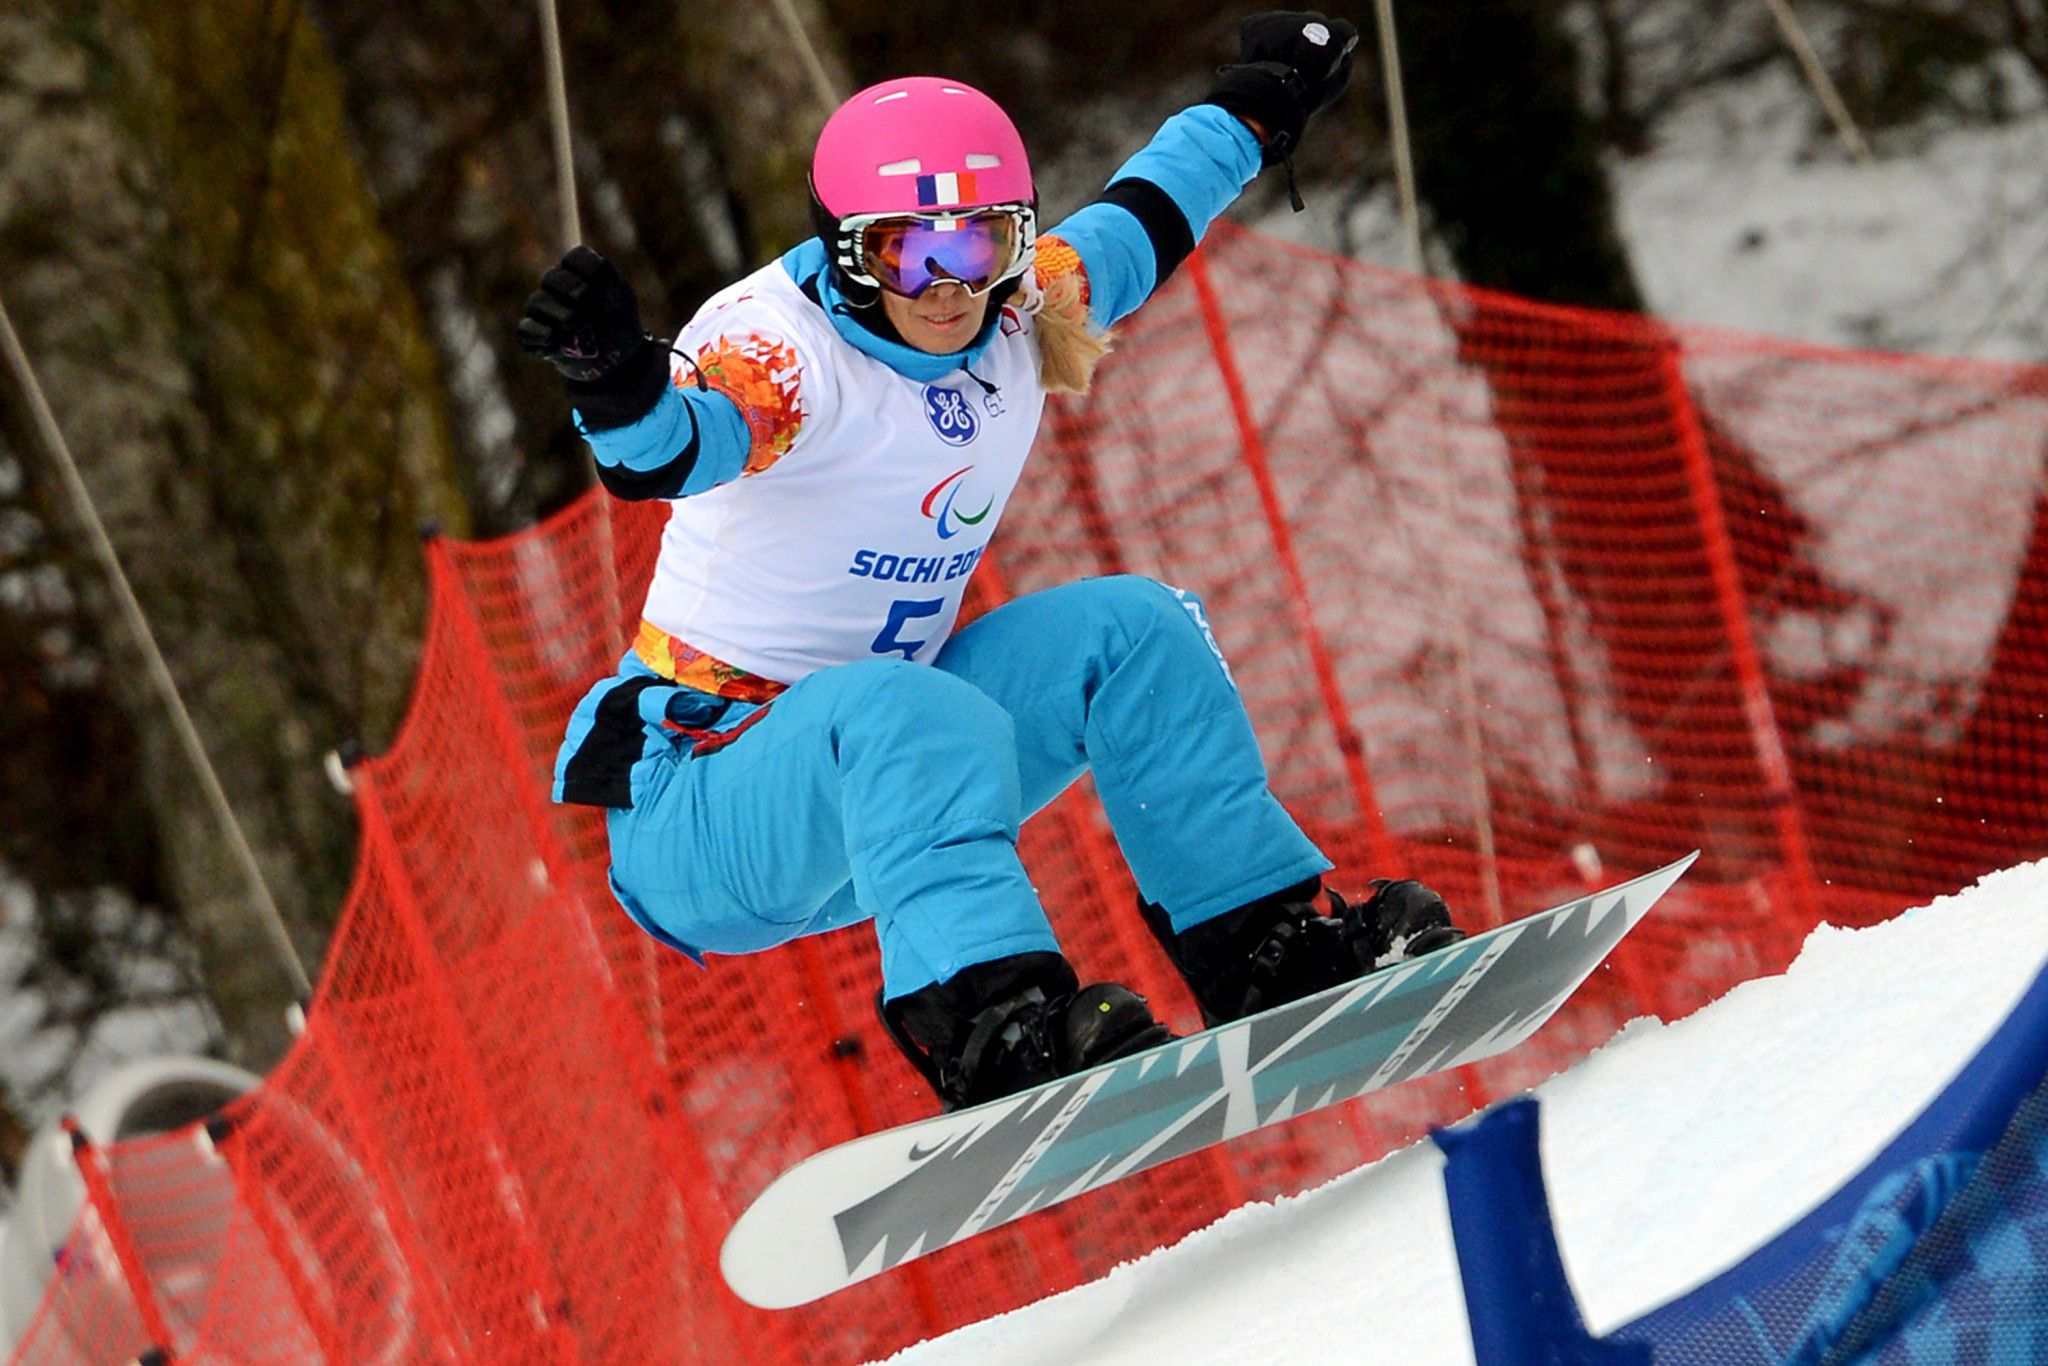 Cécile Hernandez will hope to improve on her silver medal from Sochi 2014 ©Getty Images